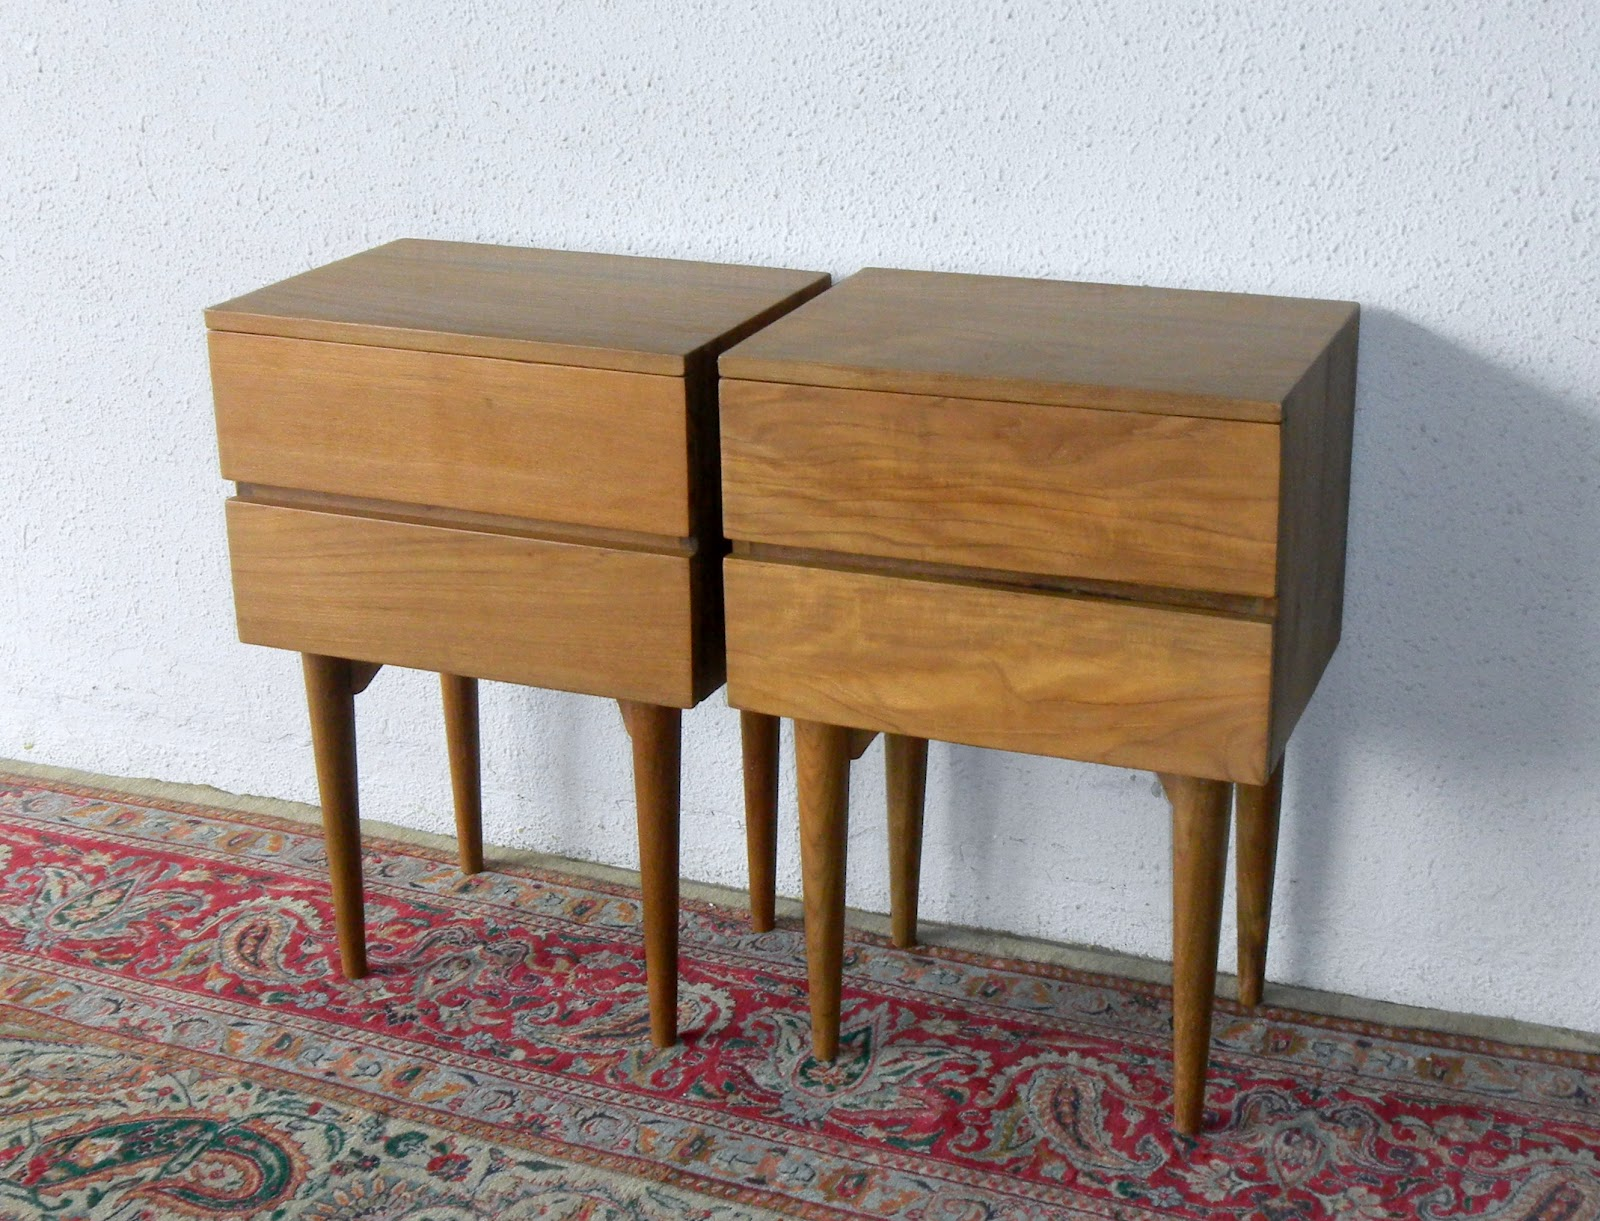 MID CENTURY MODERN BEDSIDE CABINETS - VINTAGE AND FINE REPRODUCTIONS.